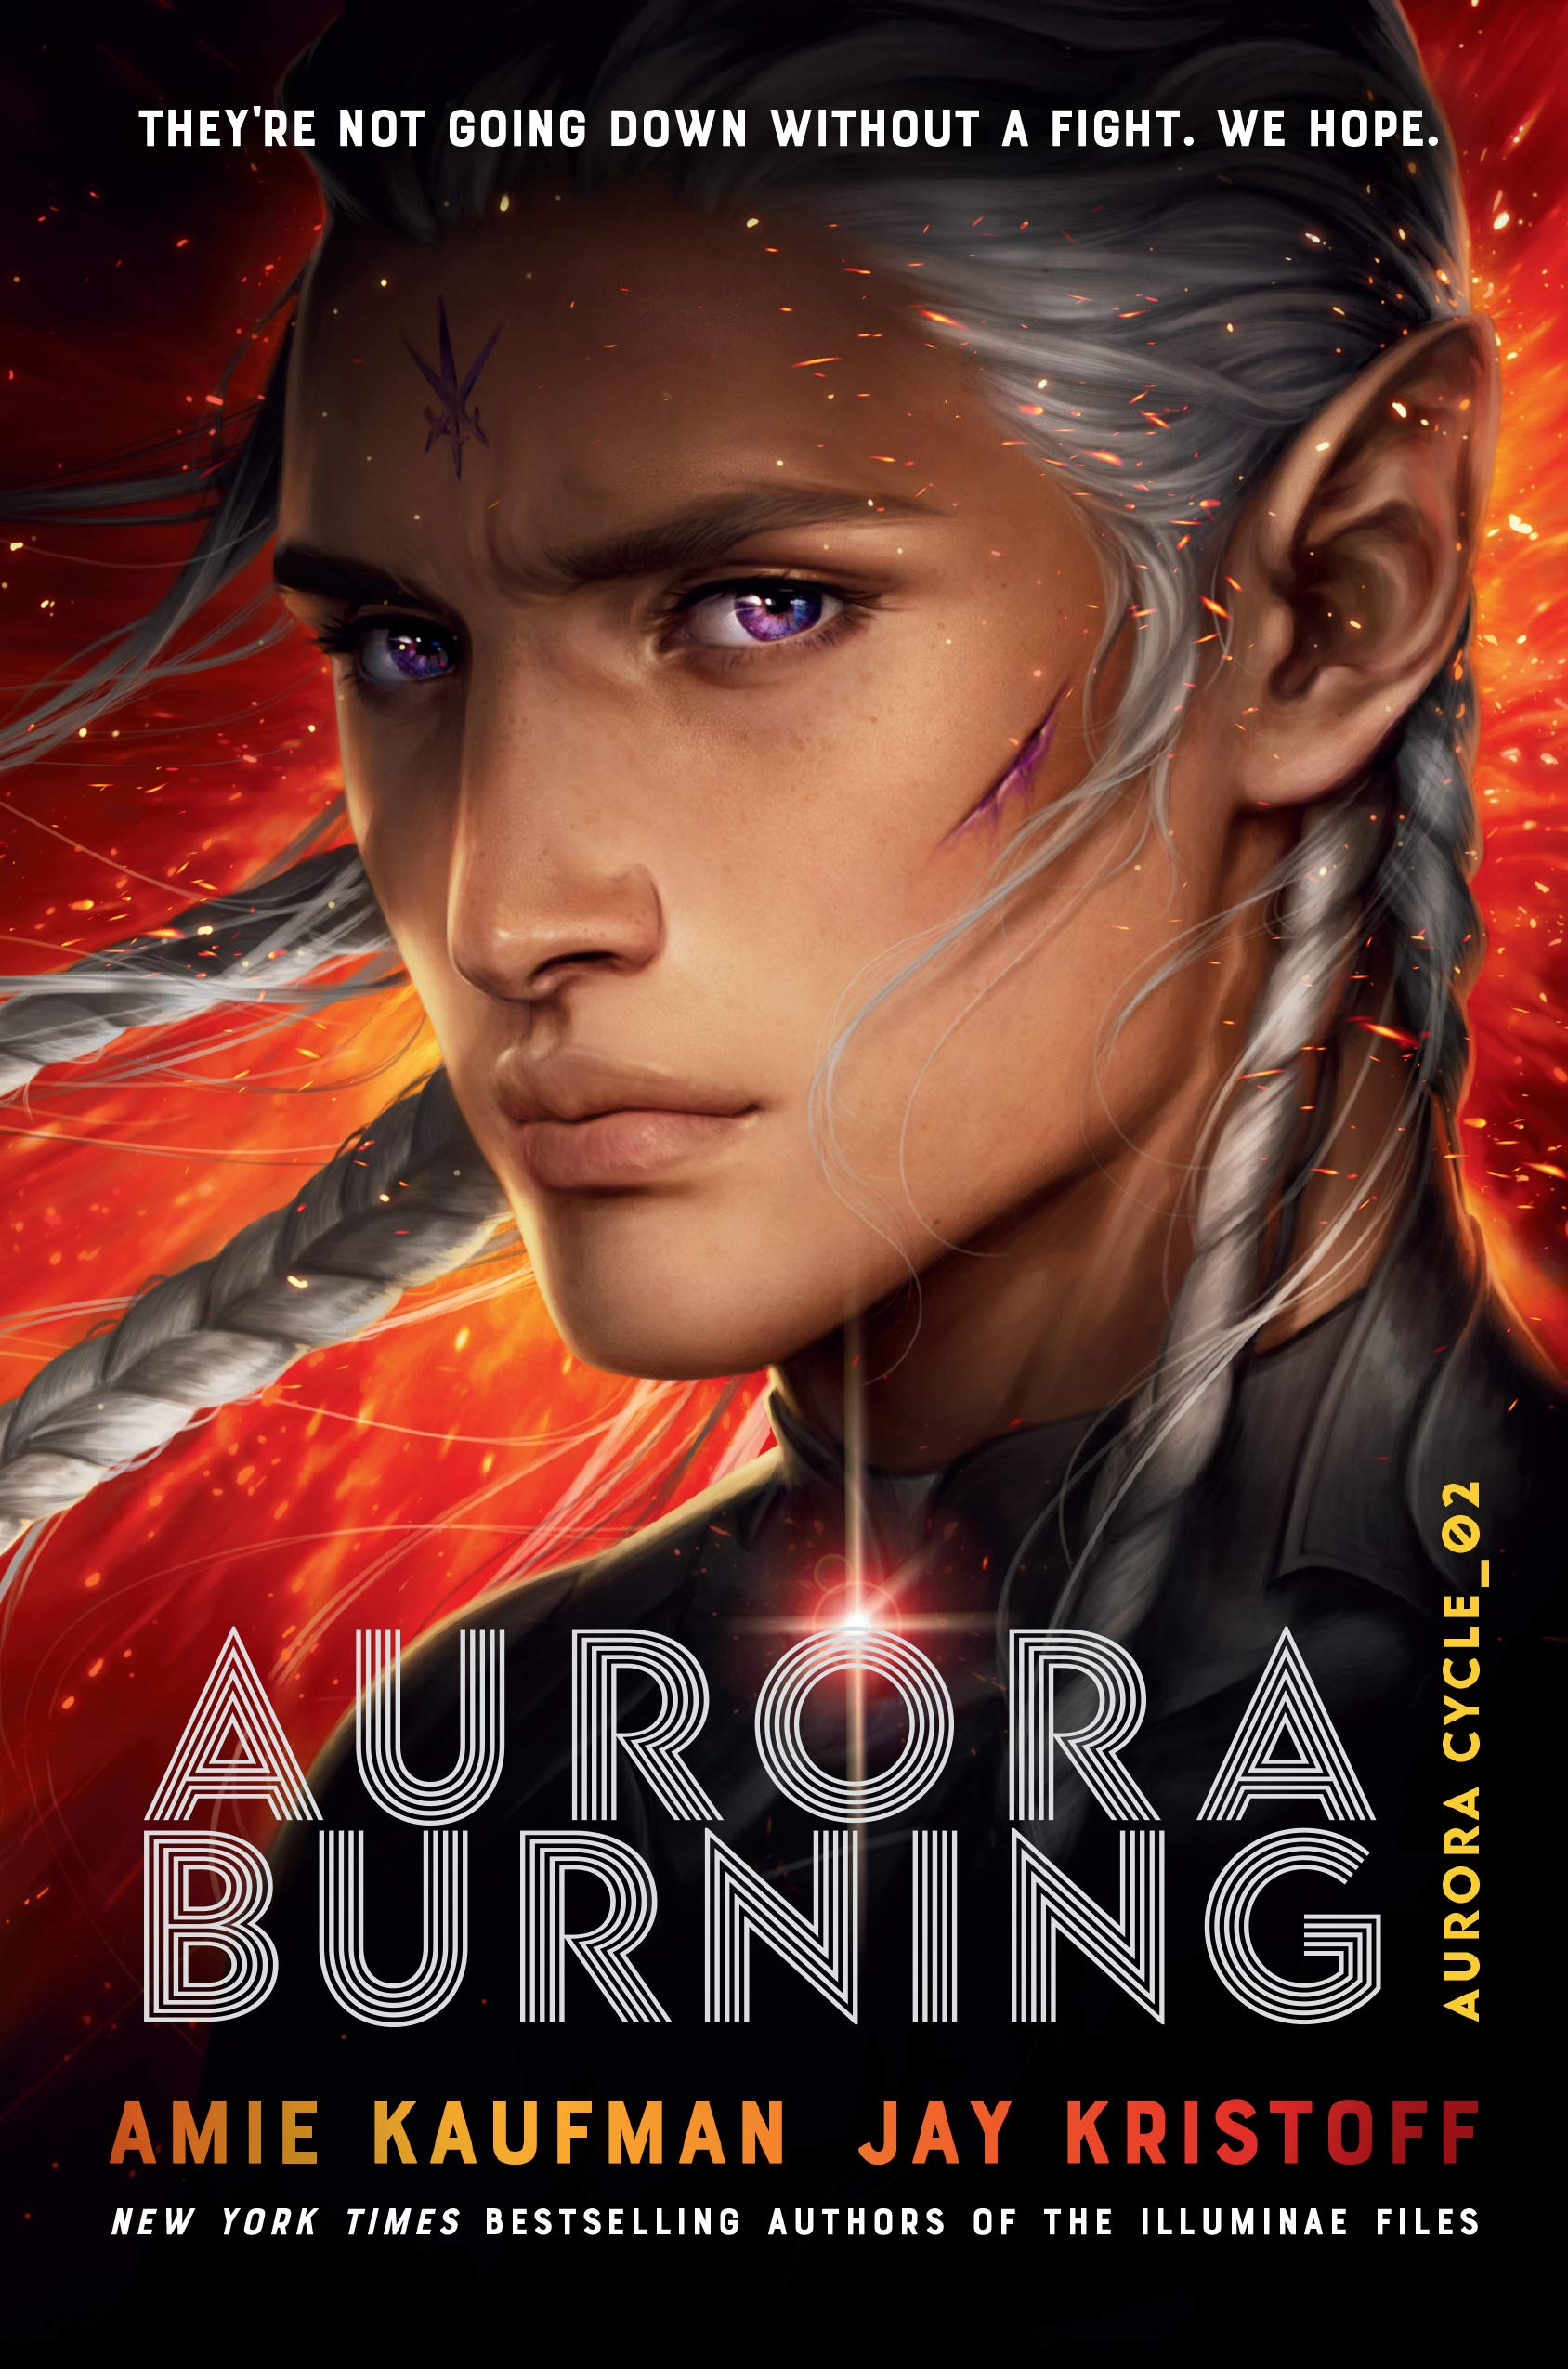 Amazon.com: Aurora Burning (The Aurora Cycle) (9781524720926 ...